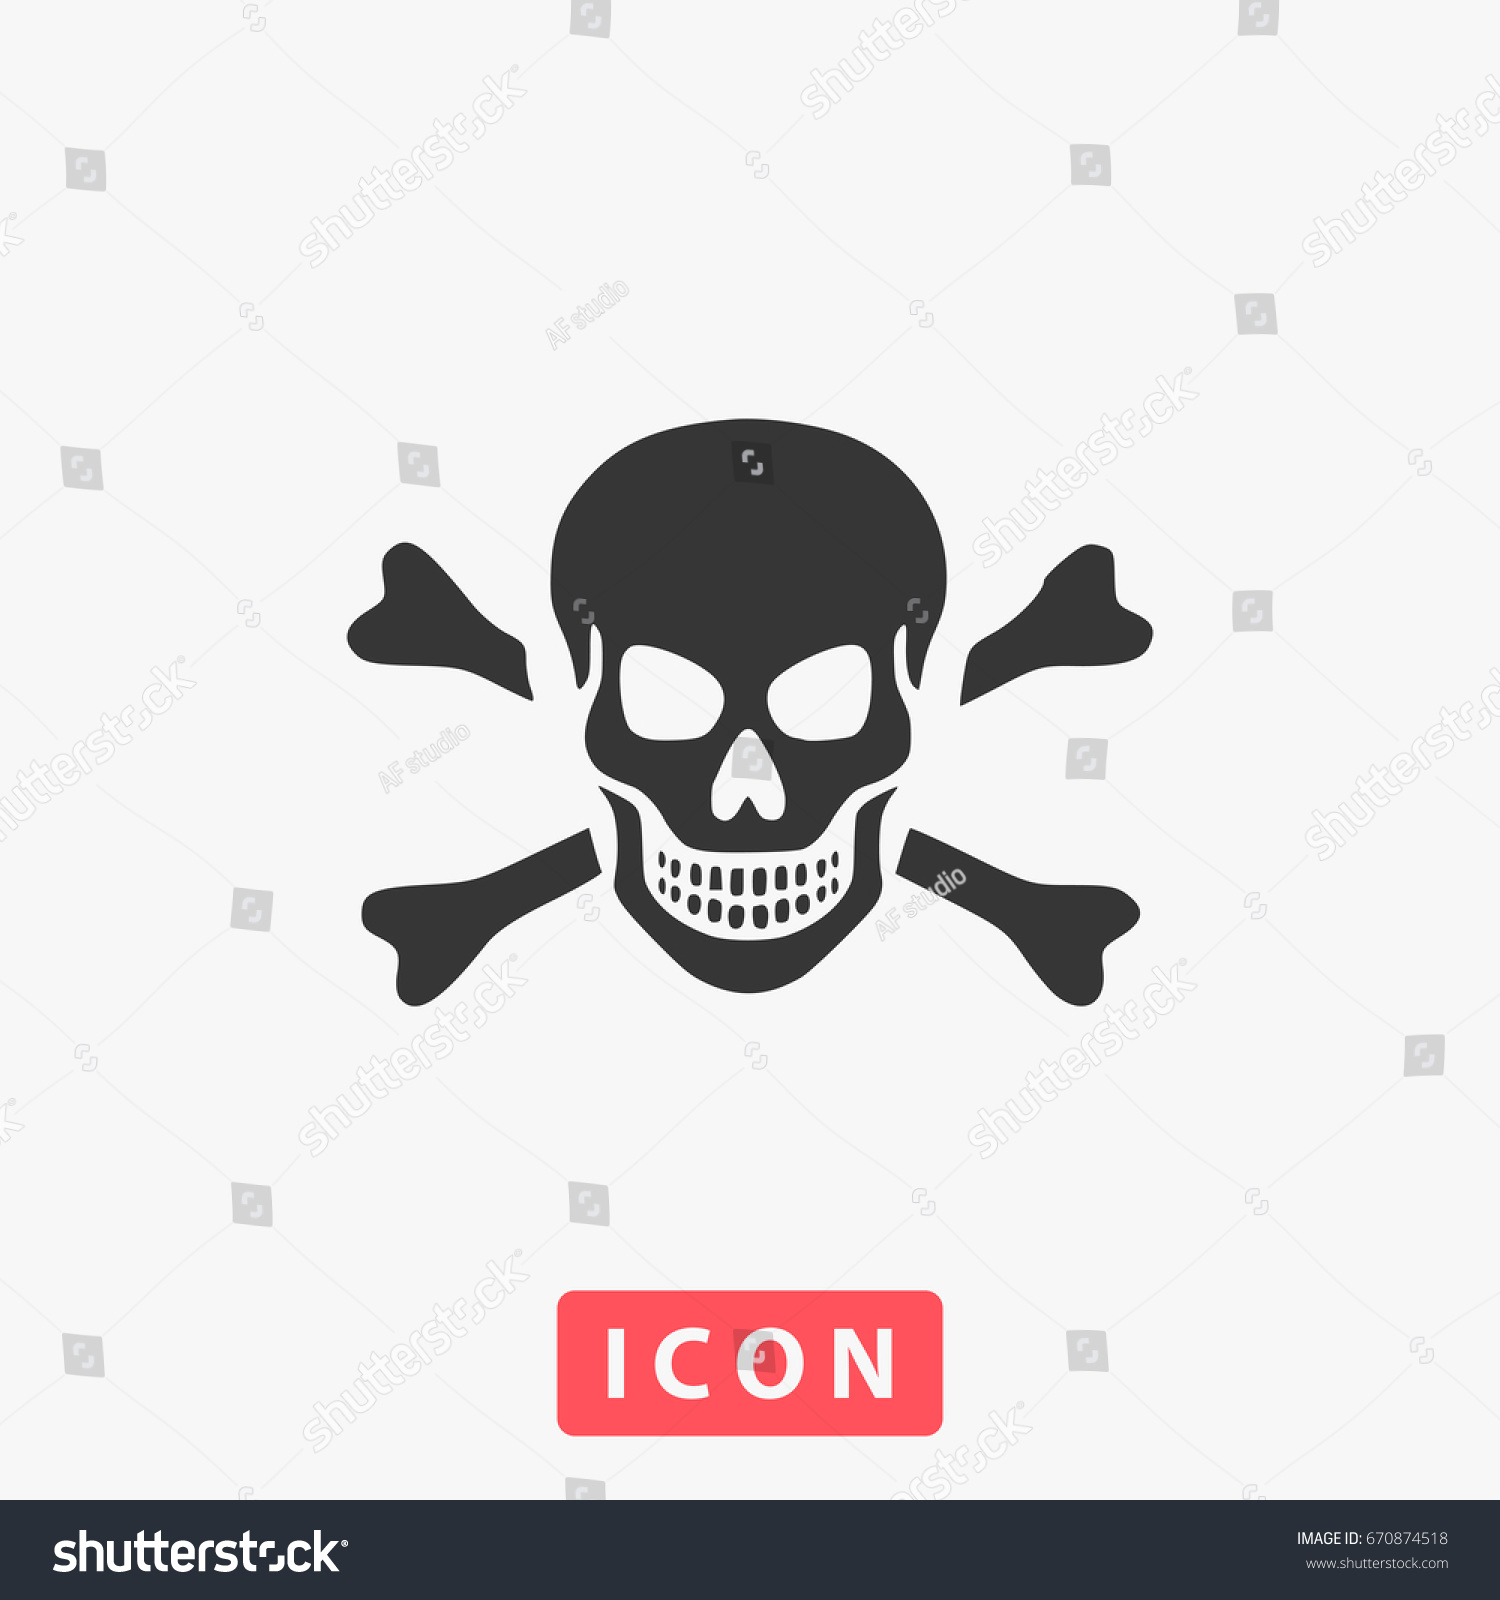 Skull icon illustration flat symbol simple stock illustration skull icon illustration flat symbol simple pictogram and text buycottarizona Images